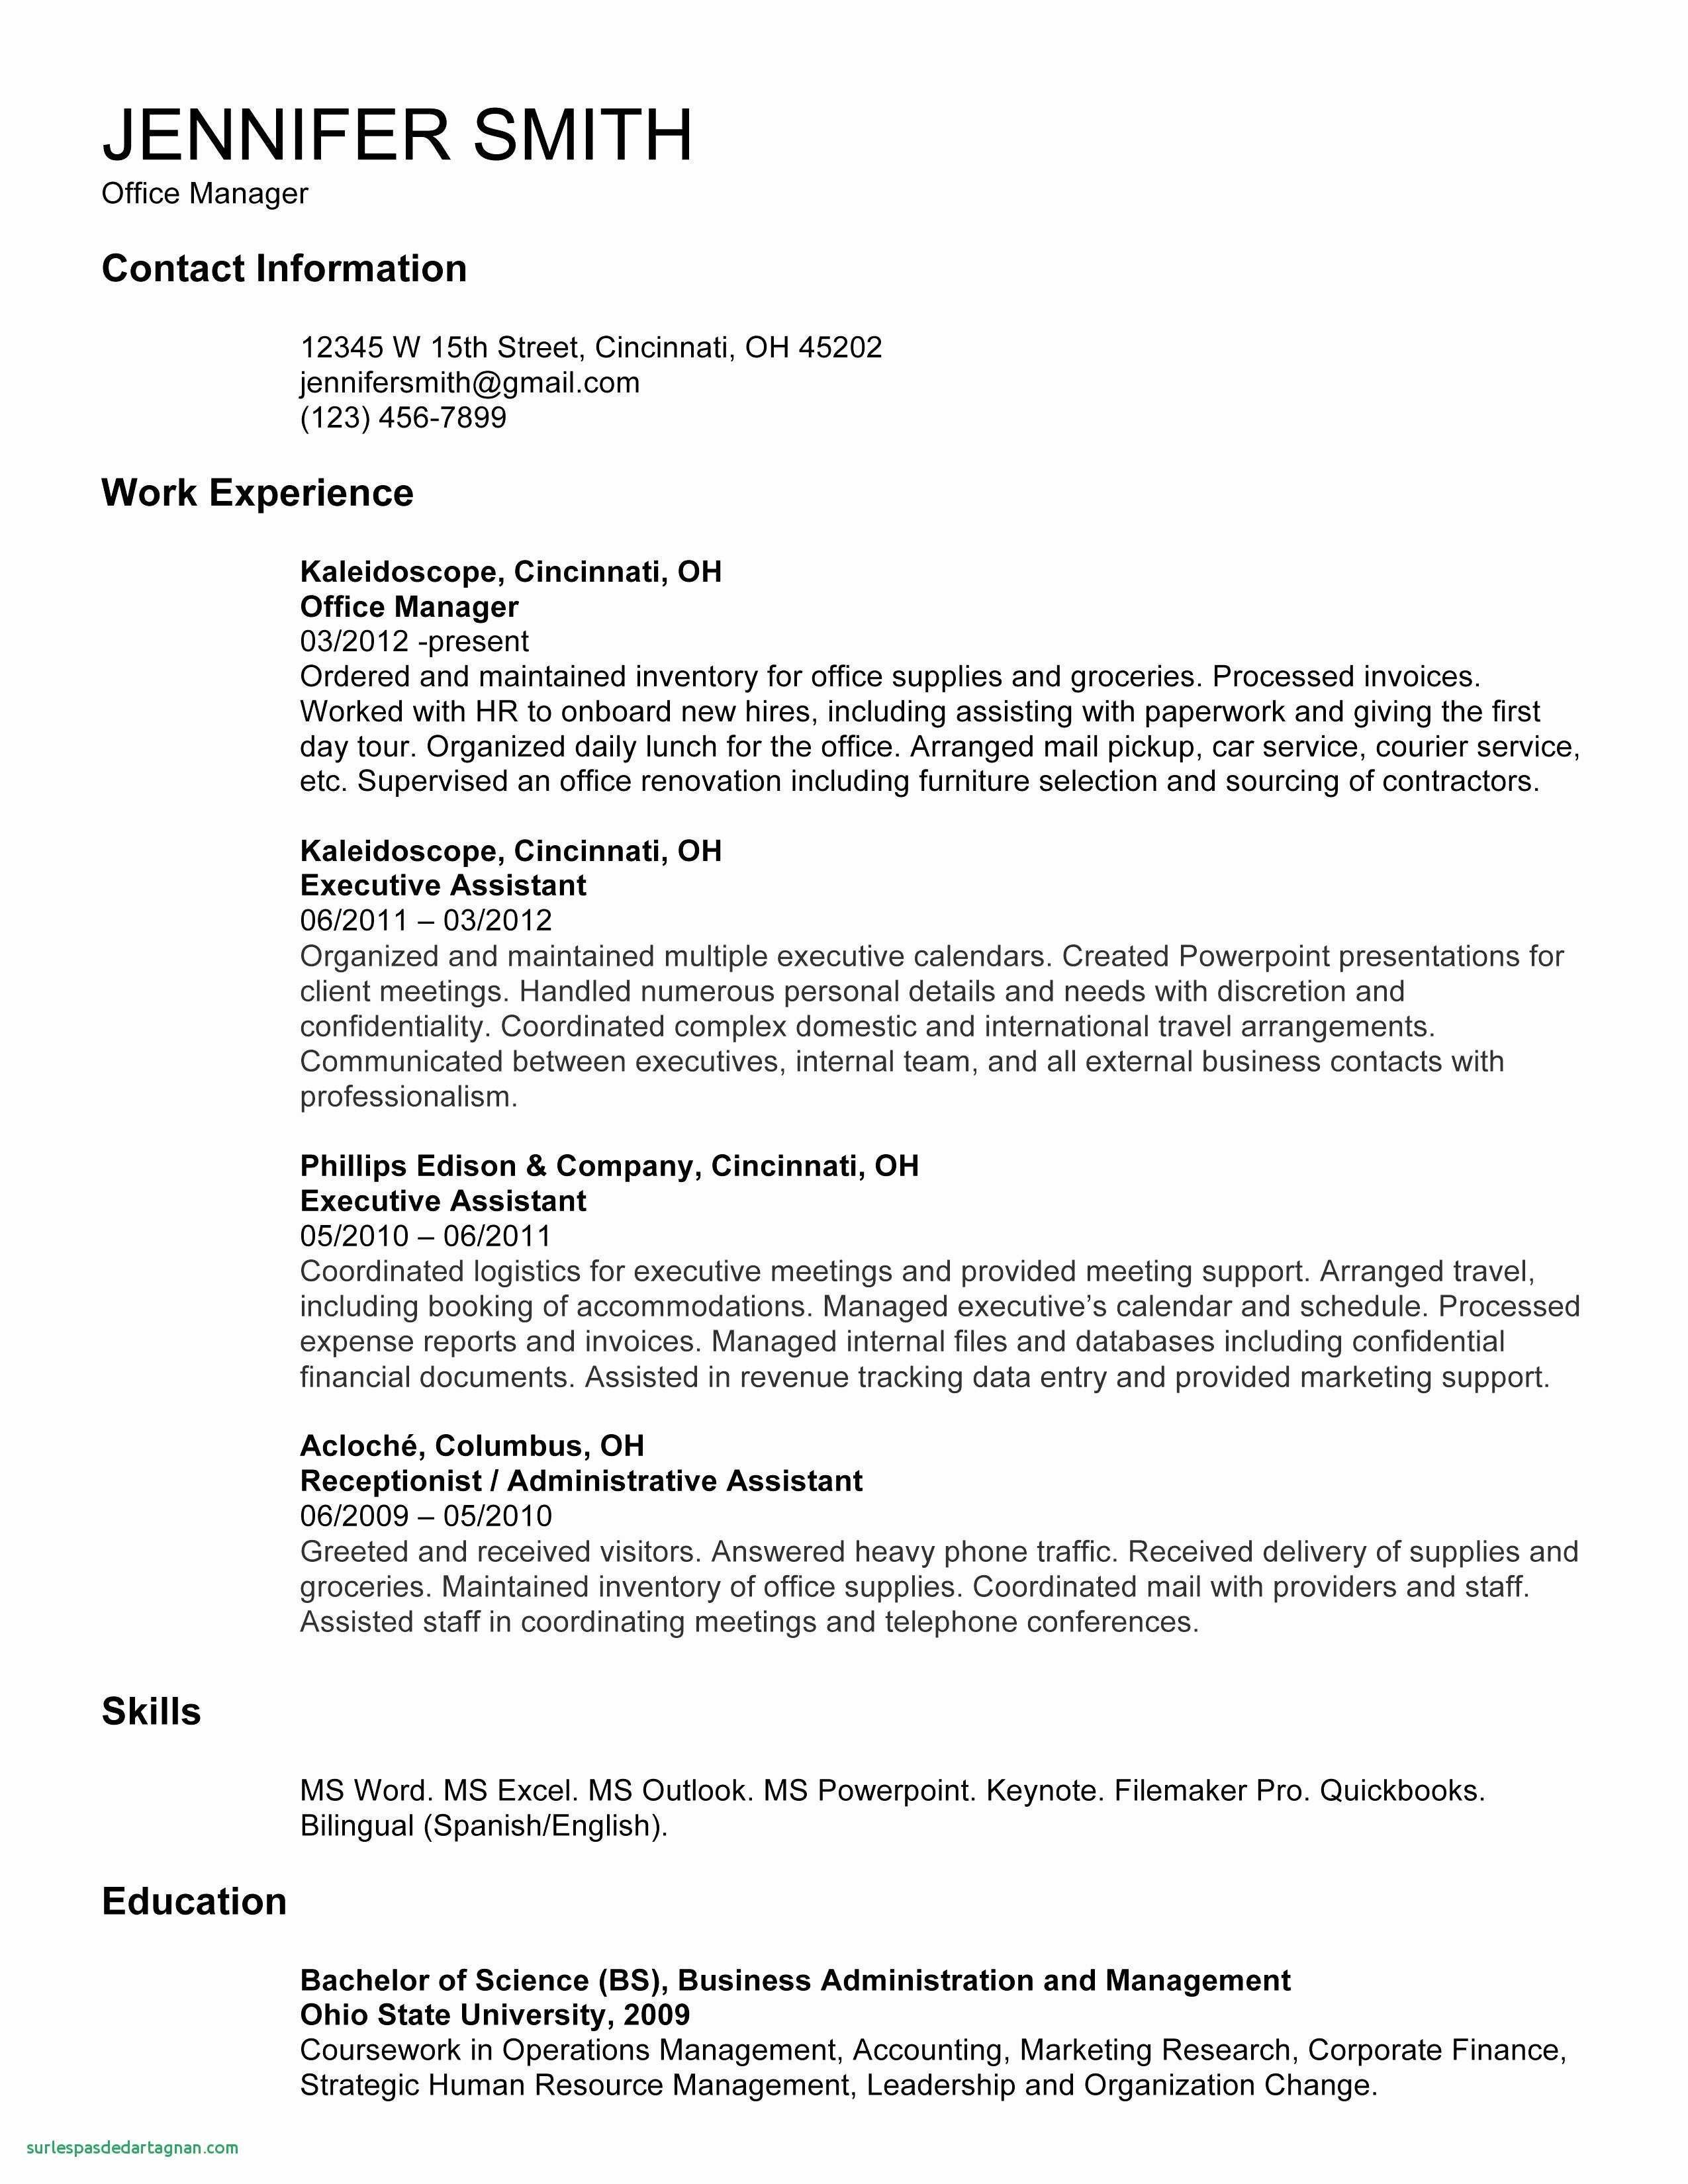 Mit Resume Template - Resume Template Download Free Unique ¢Ë†Å¡ Resume Template Download